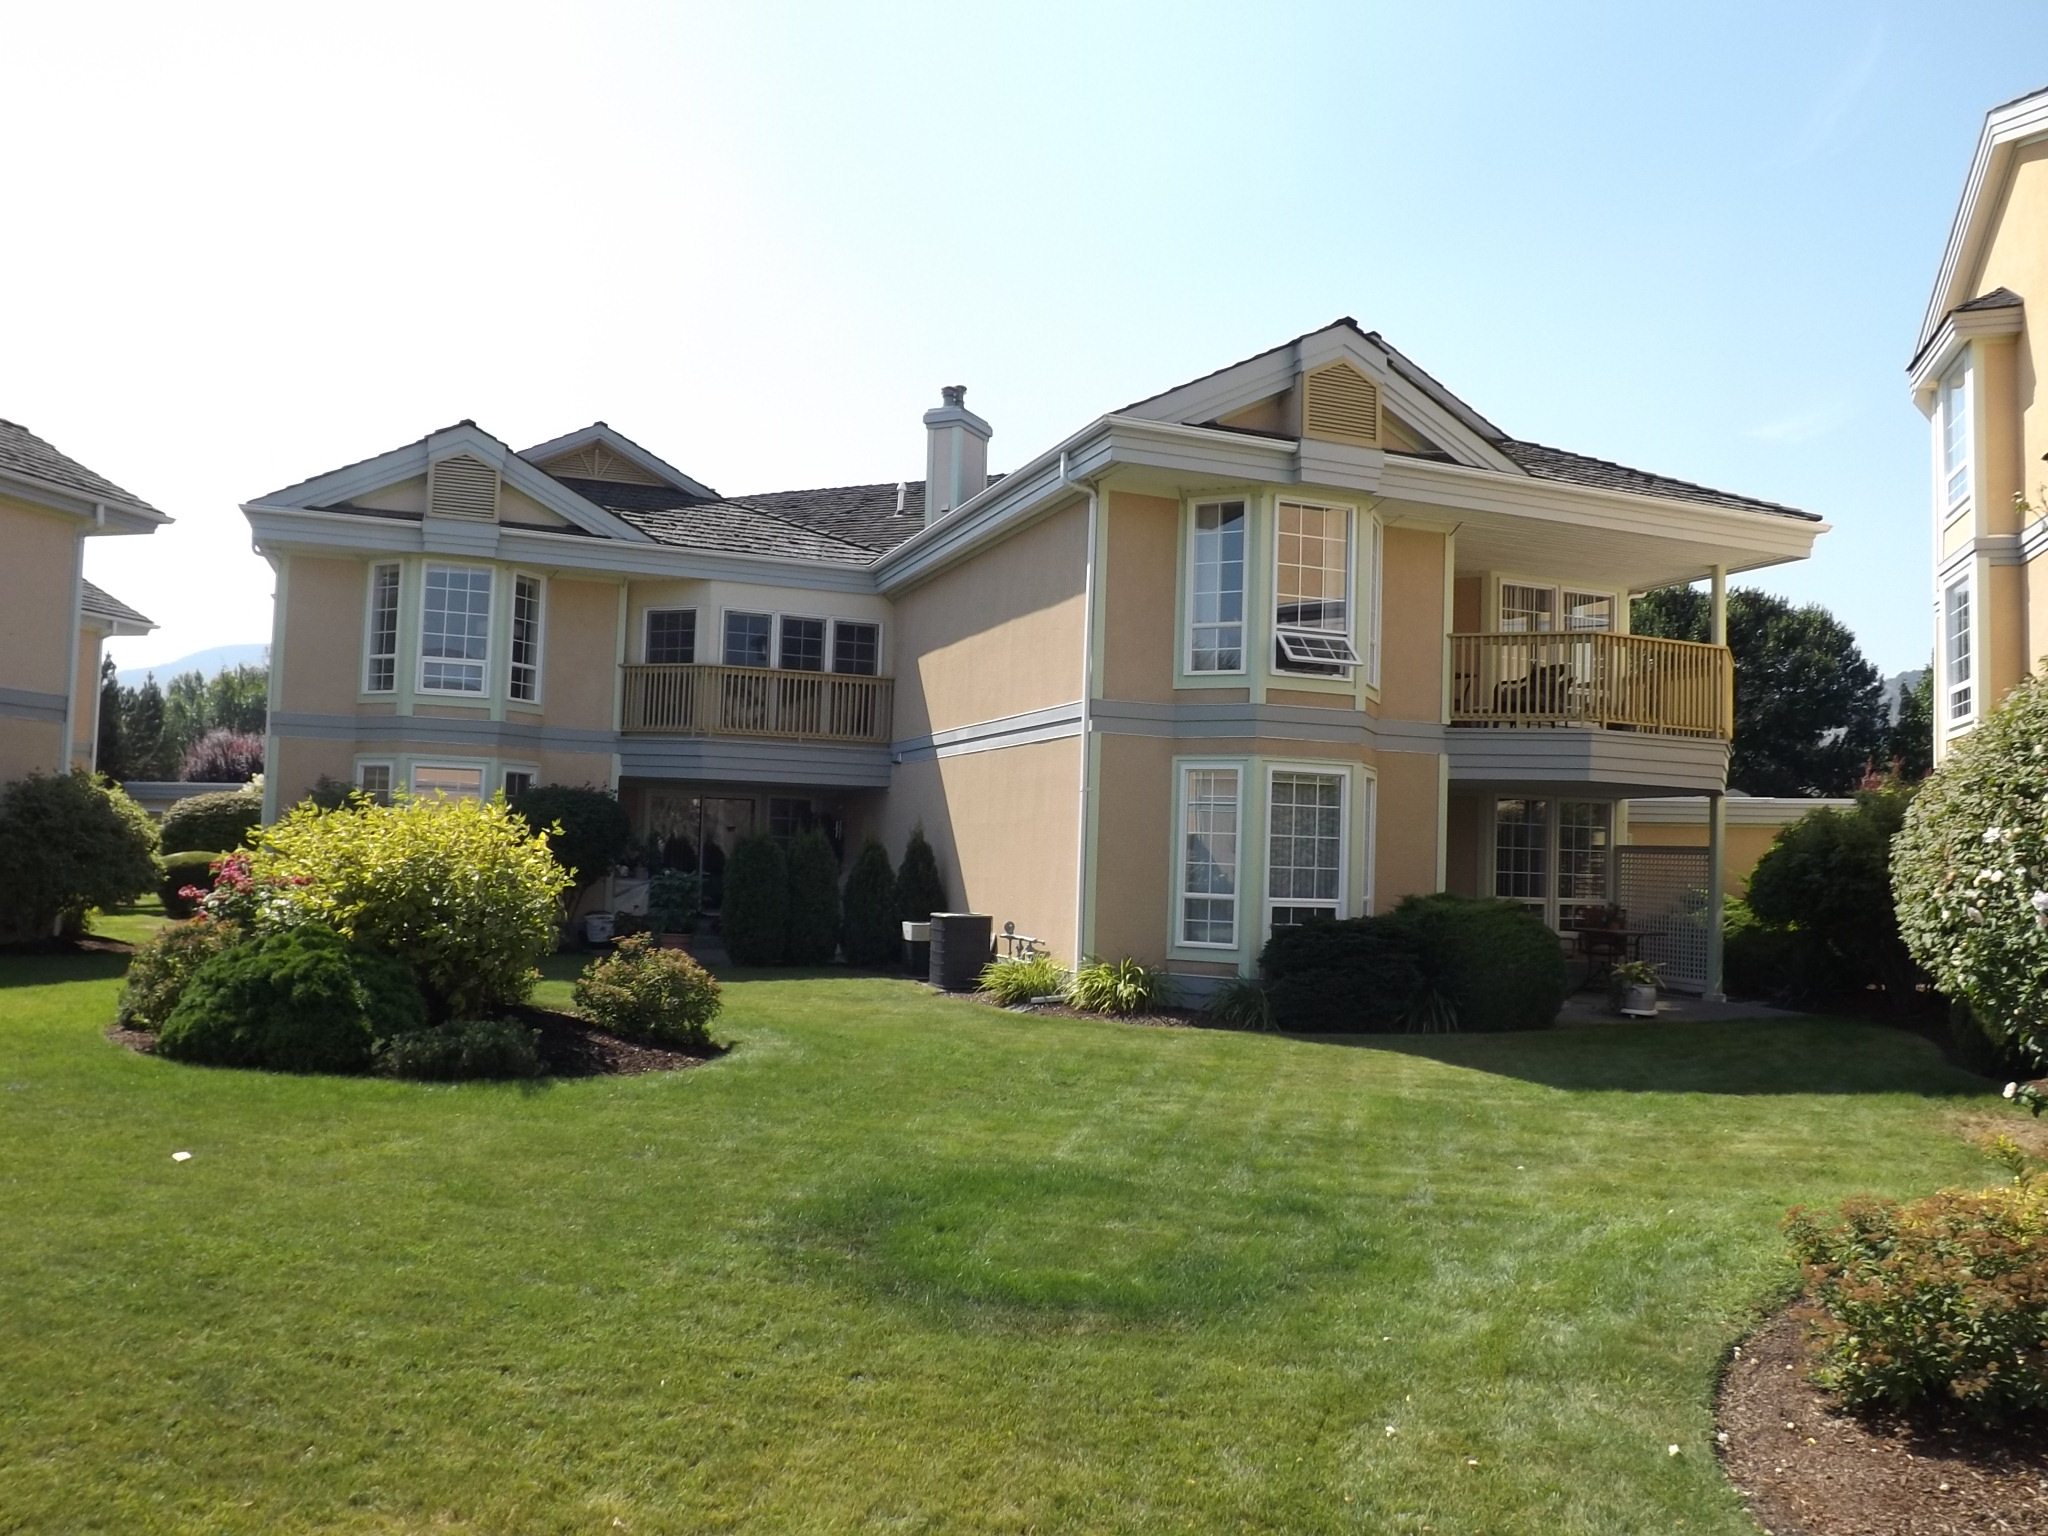 This is an example of a property located in Penticton, British Columbia - Depreciation Report was completed by Delta Appraisal Corporation